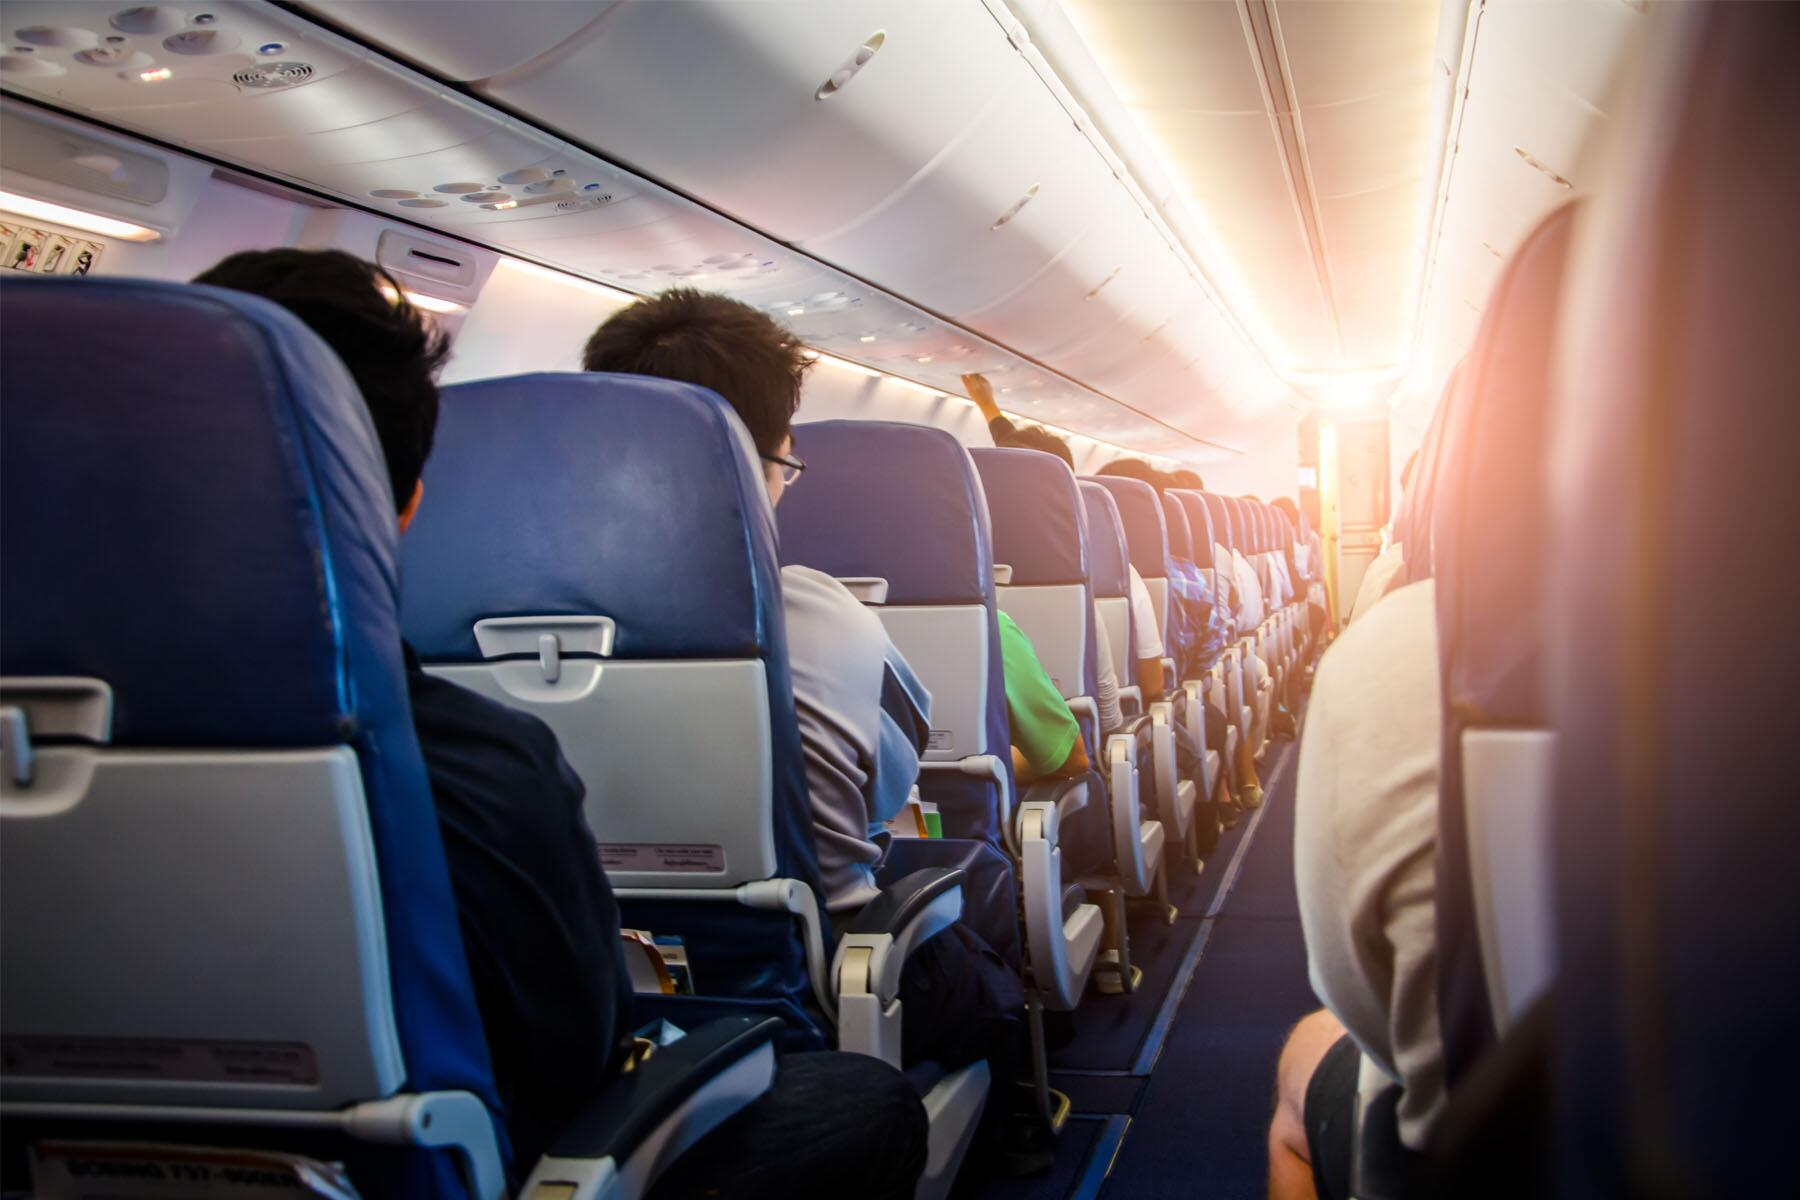 Gate 1 Travel Canada Christmas 2021 Should You Travel During The Covid Pandemic Or Should You Change Your Plans Due To Coronavirus Our Comprehensive Guide To 2020 And 2021